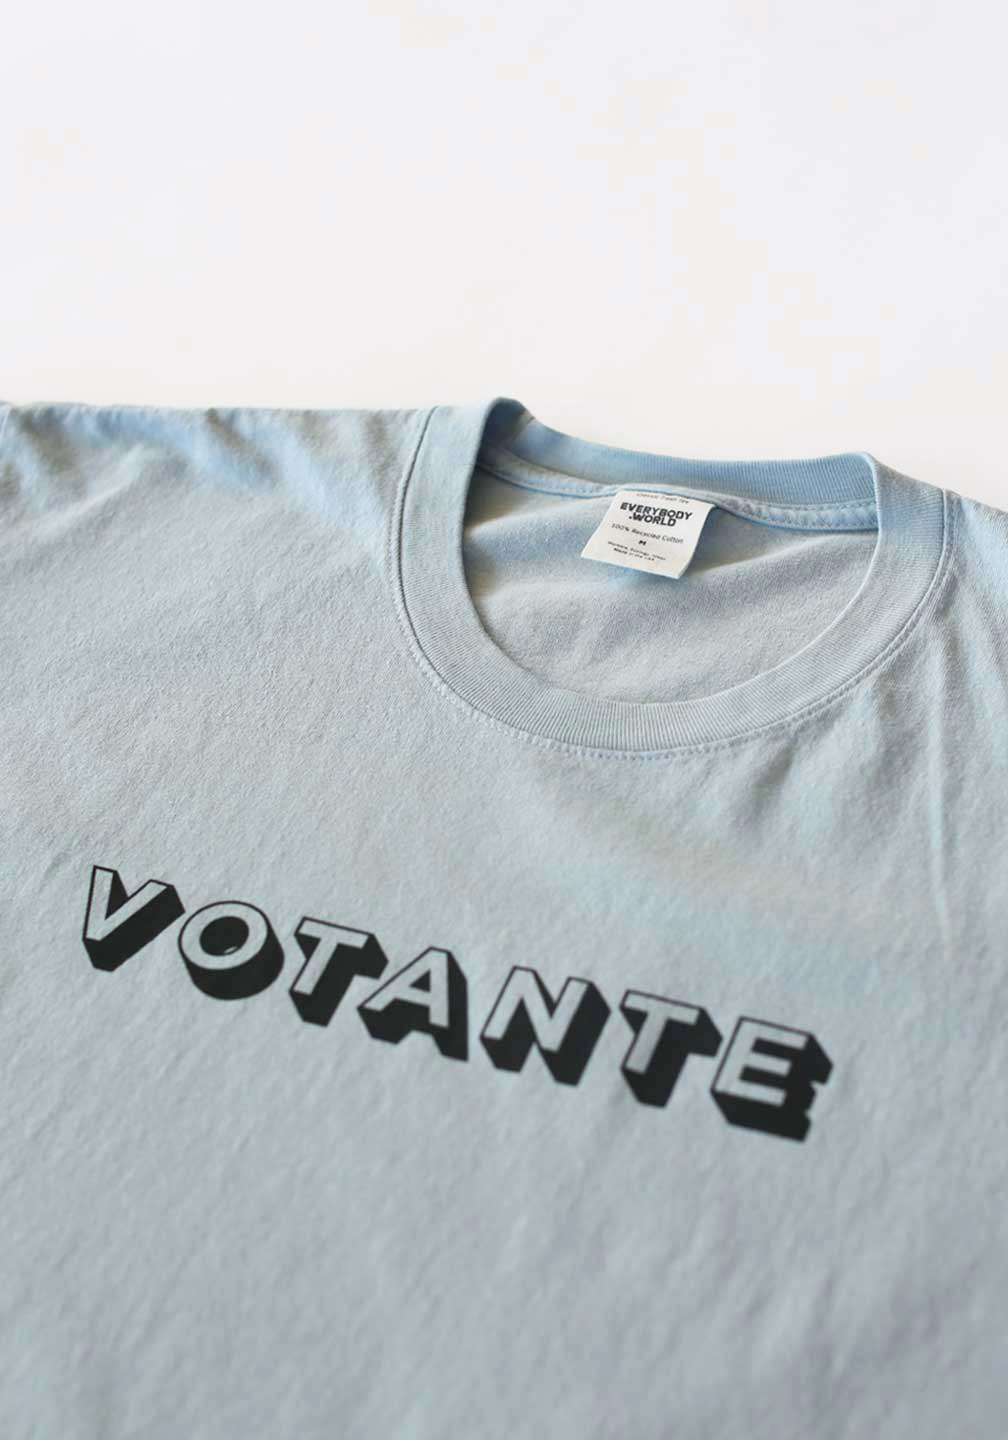 Votare-TEE-Front-Detail